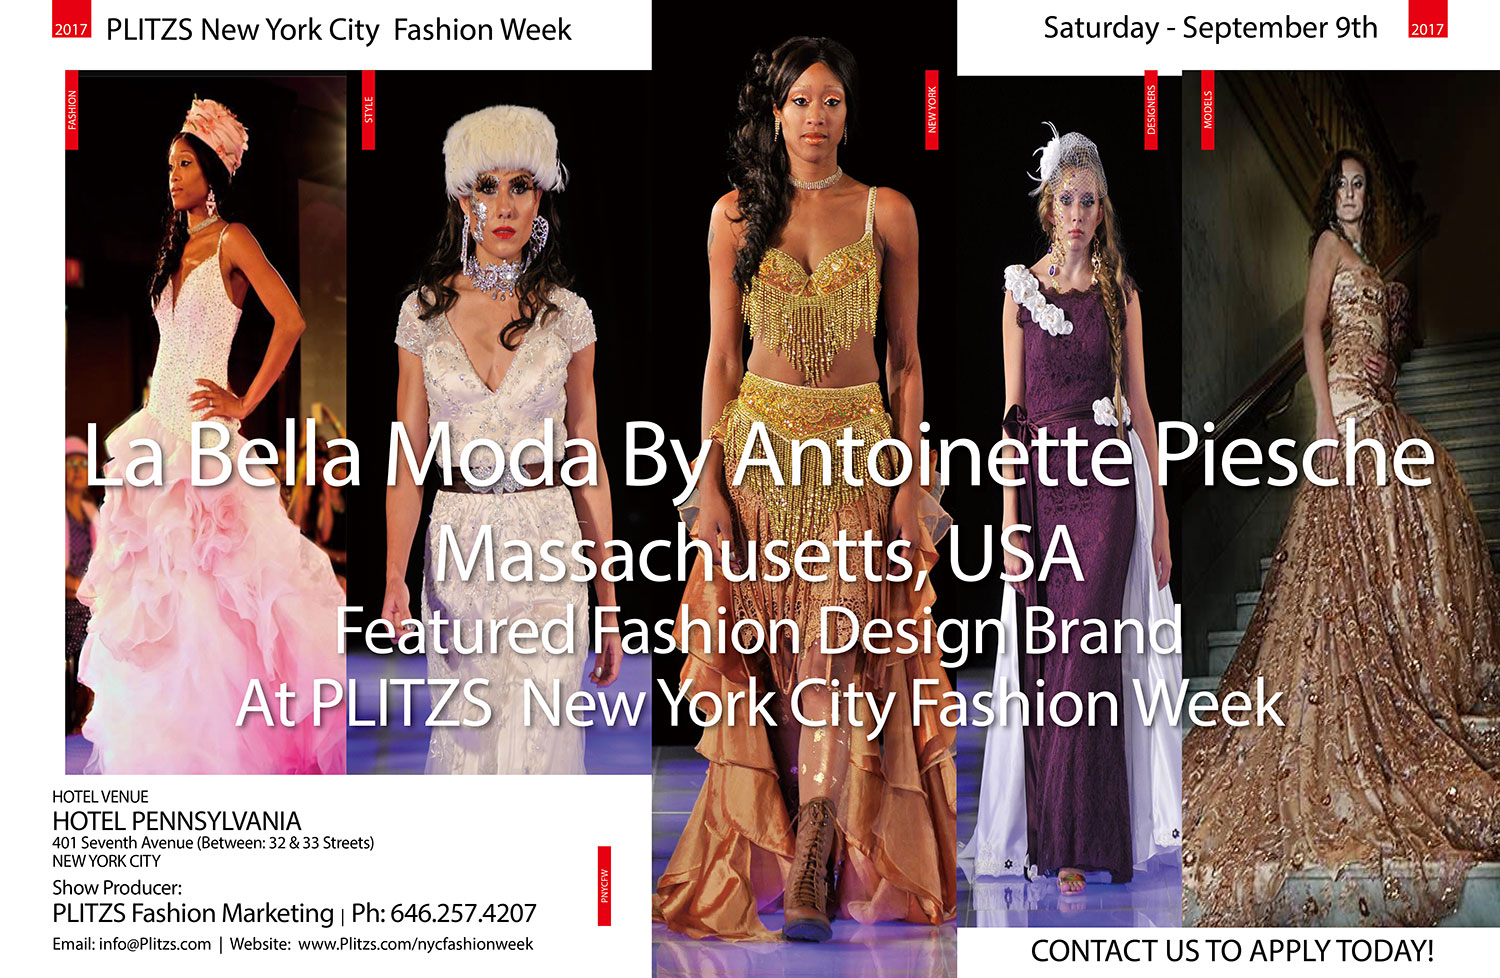 La Bella Moda Home Page Plitzs New York City Fashion Week